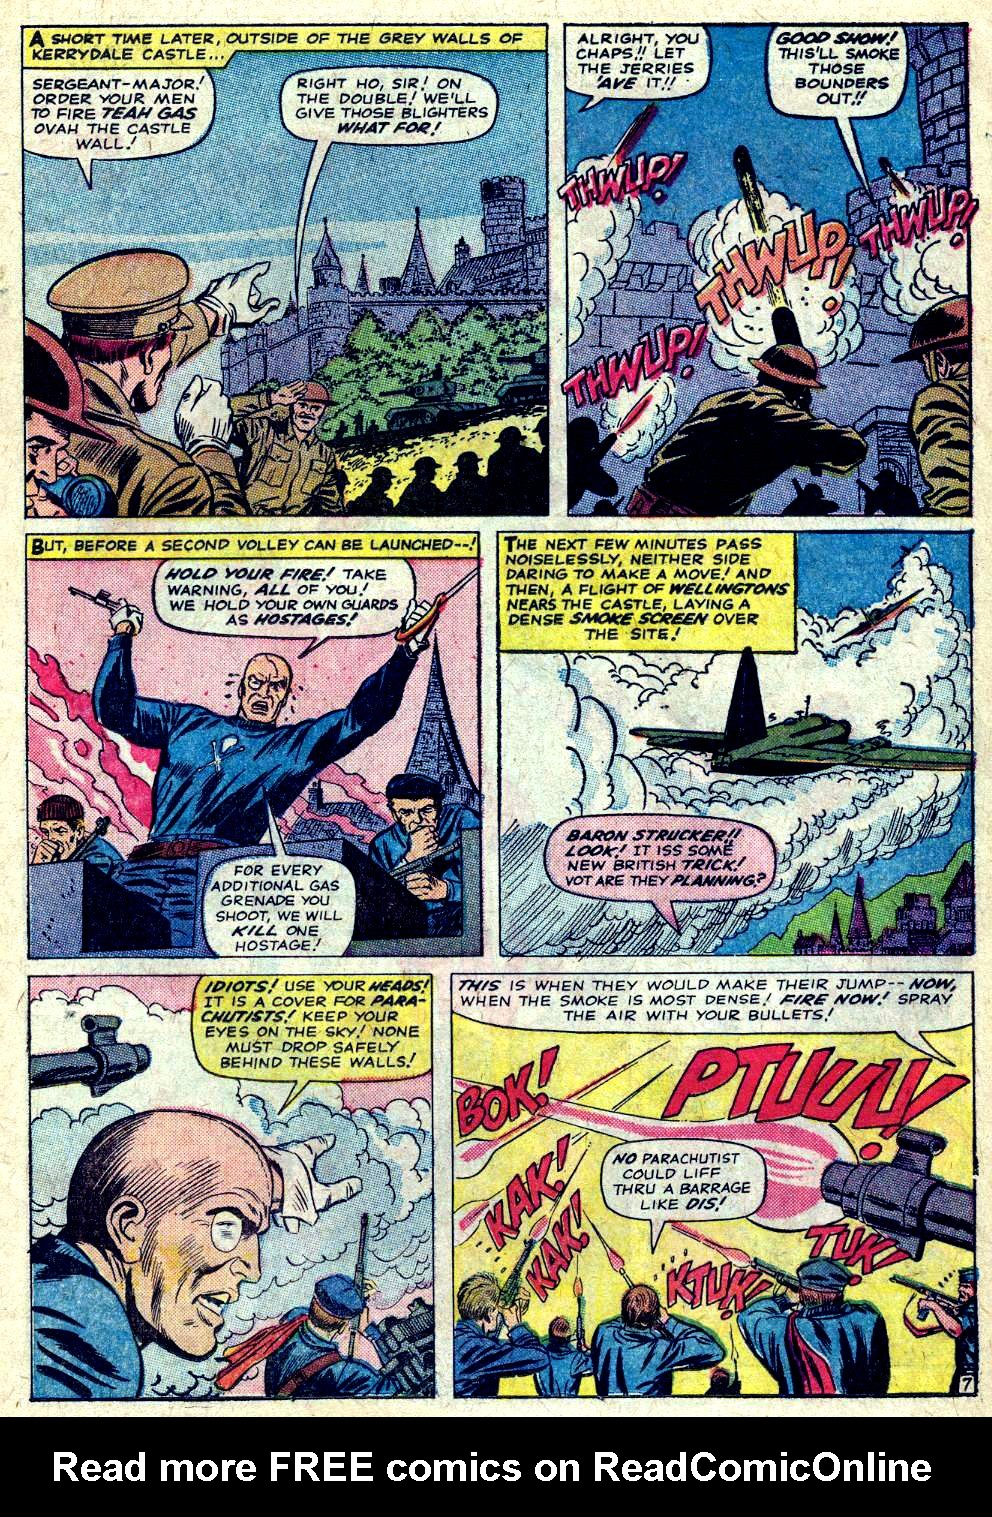 Read online Sgt. Fury comic -  Issue #20 - 11